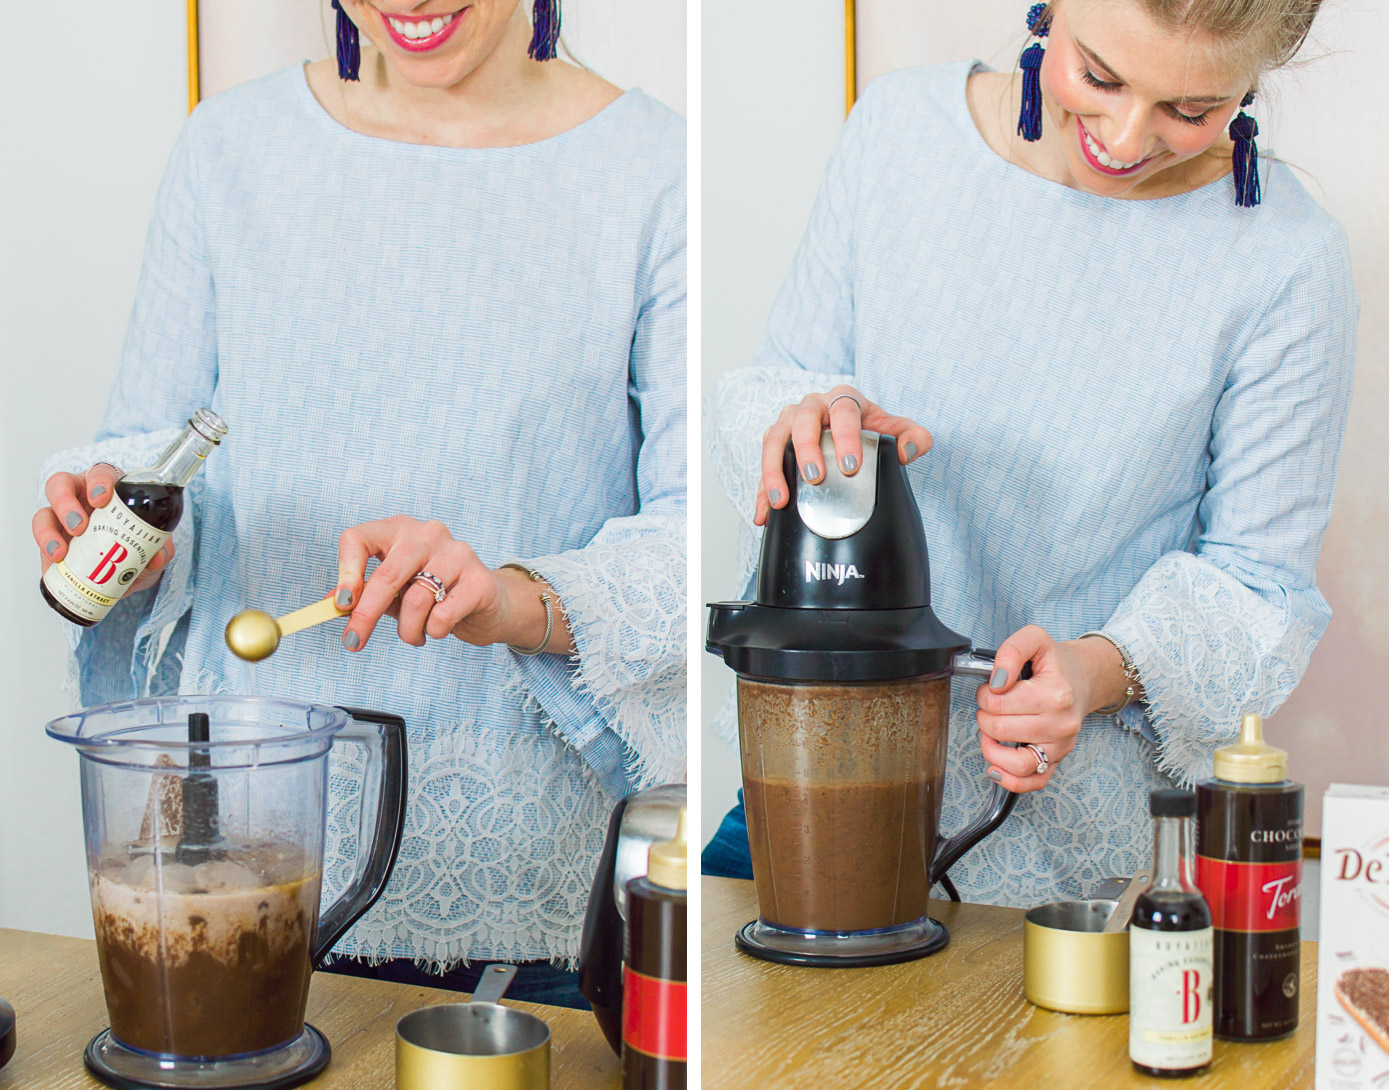 Homemade Frozen Hot Chocolate | Valentine's Day Dessert Idea | Louella Reese Life & Style Blog